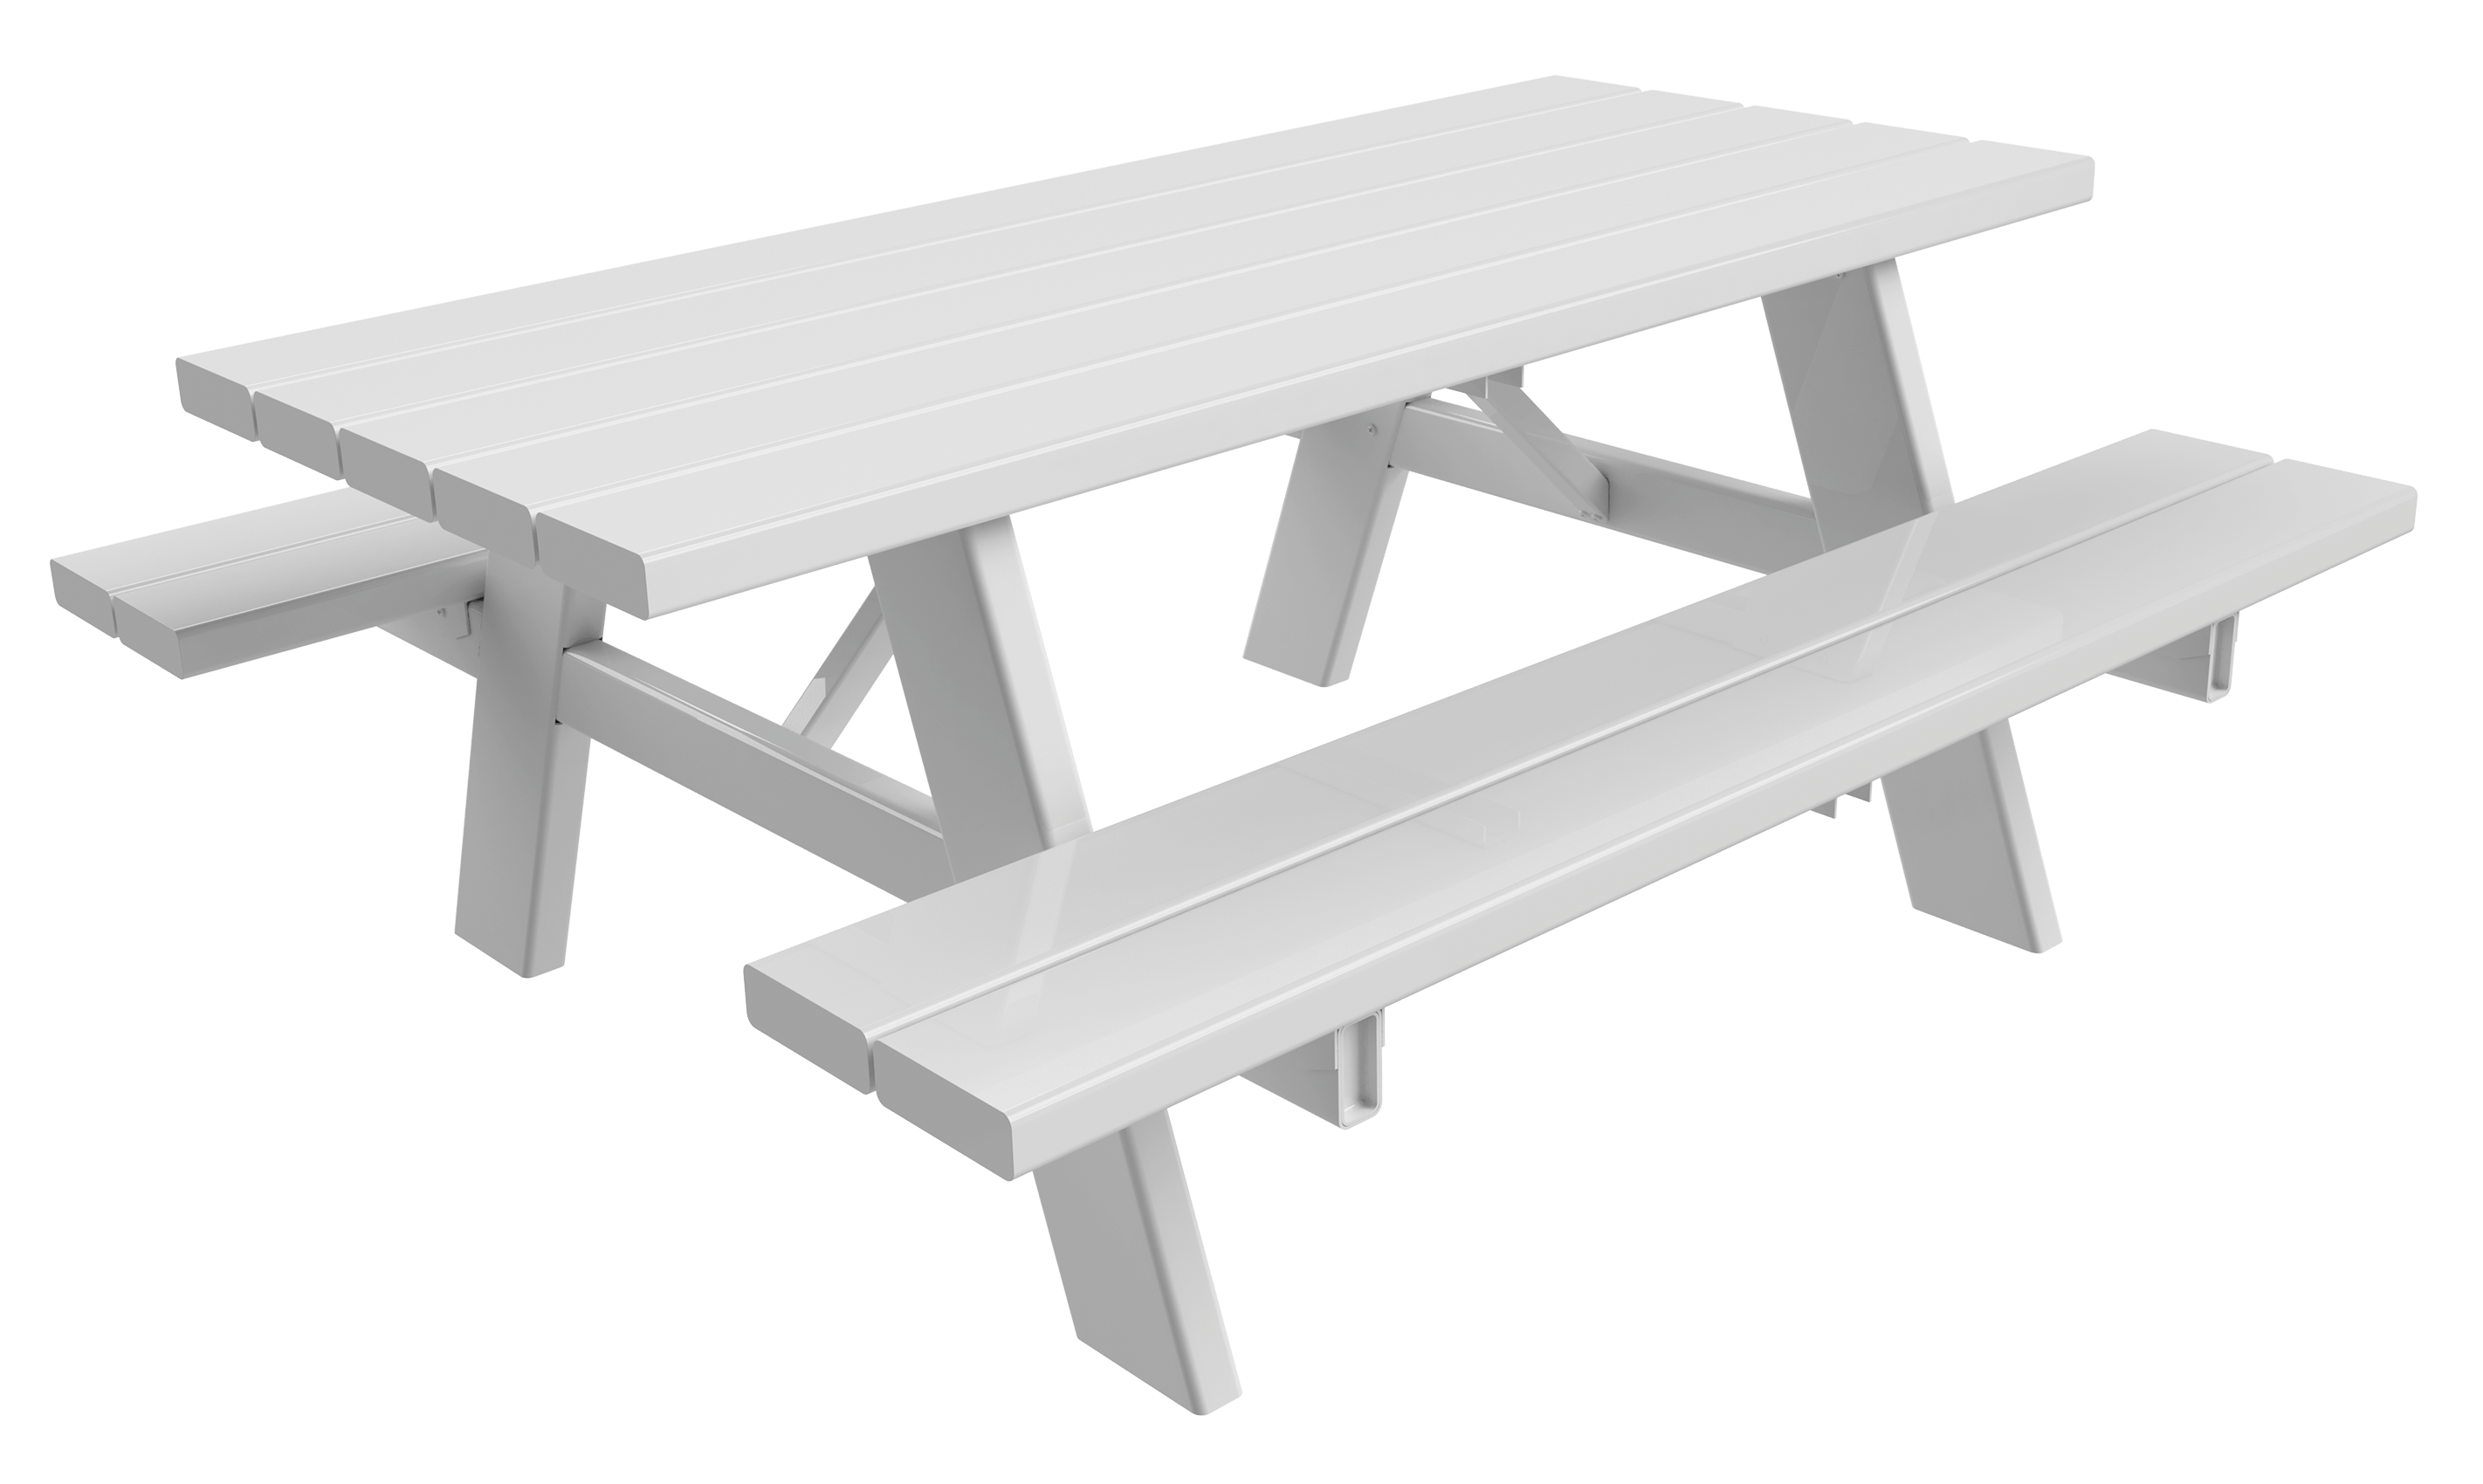 Picnic table png. High quality vinyl tables